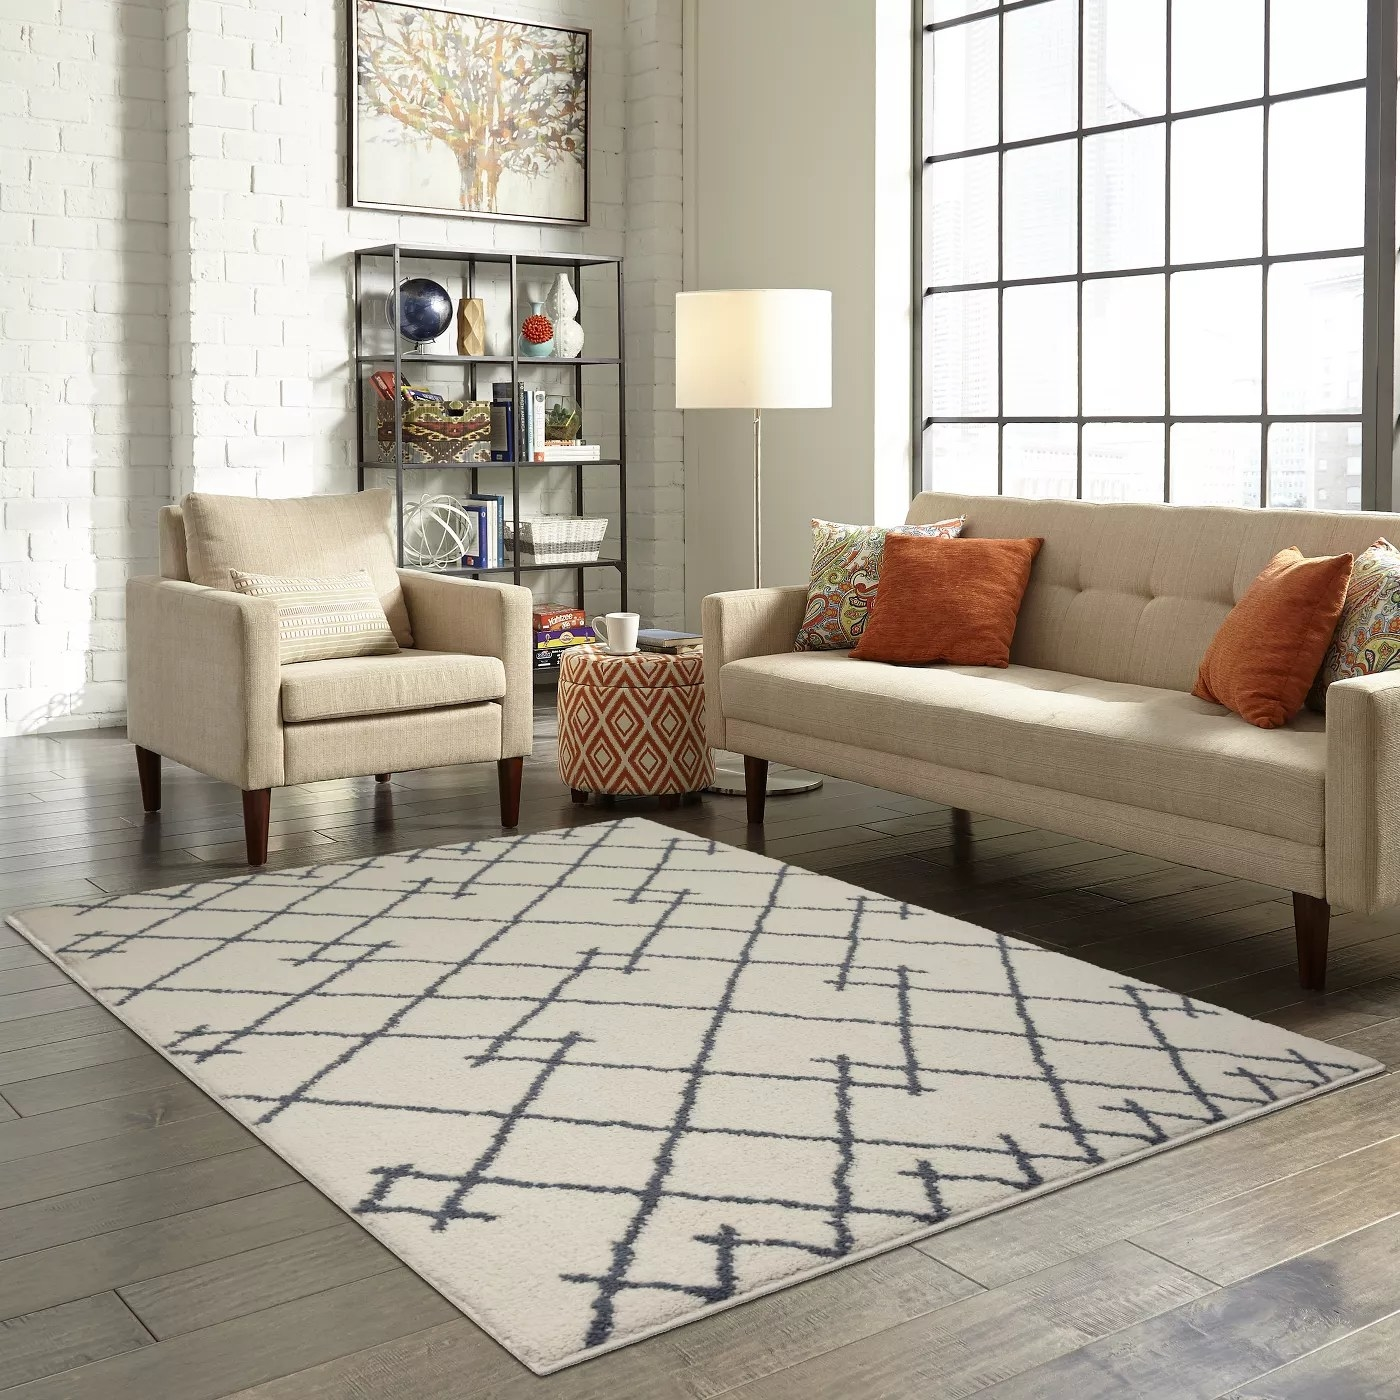 The white tufted rug with a grey geometric pattern in a living room